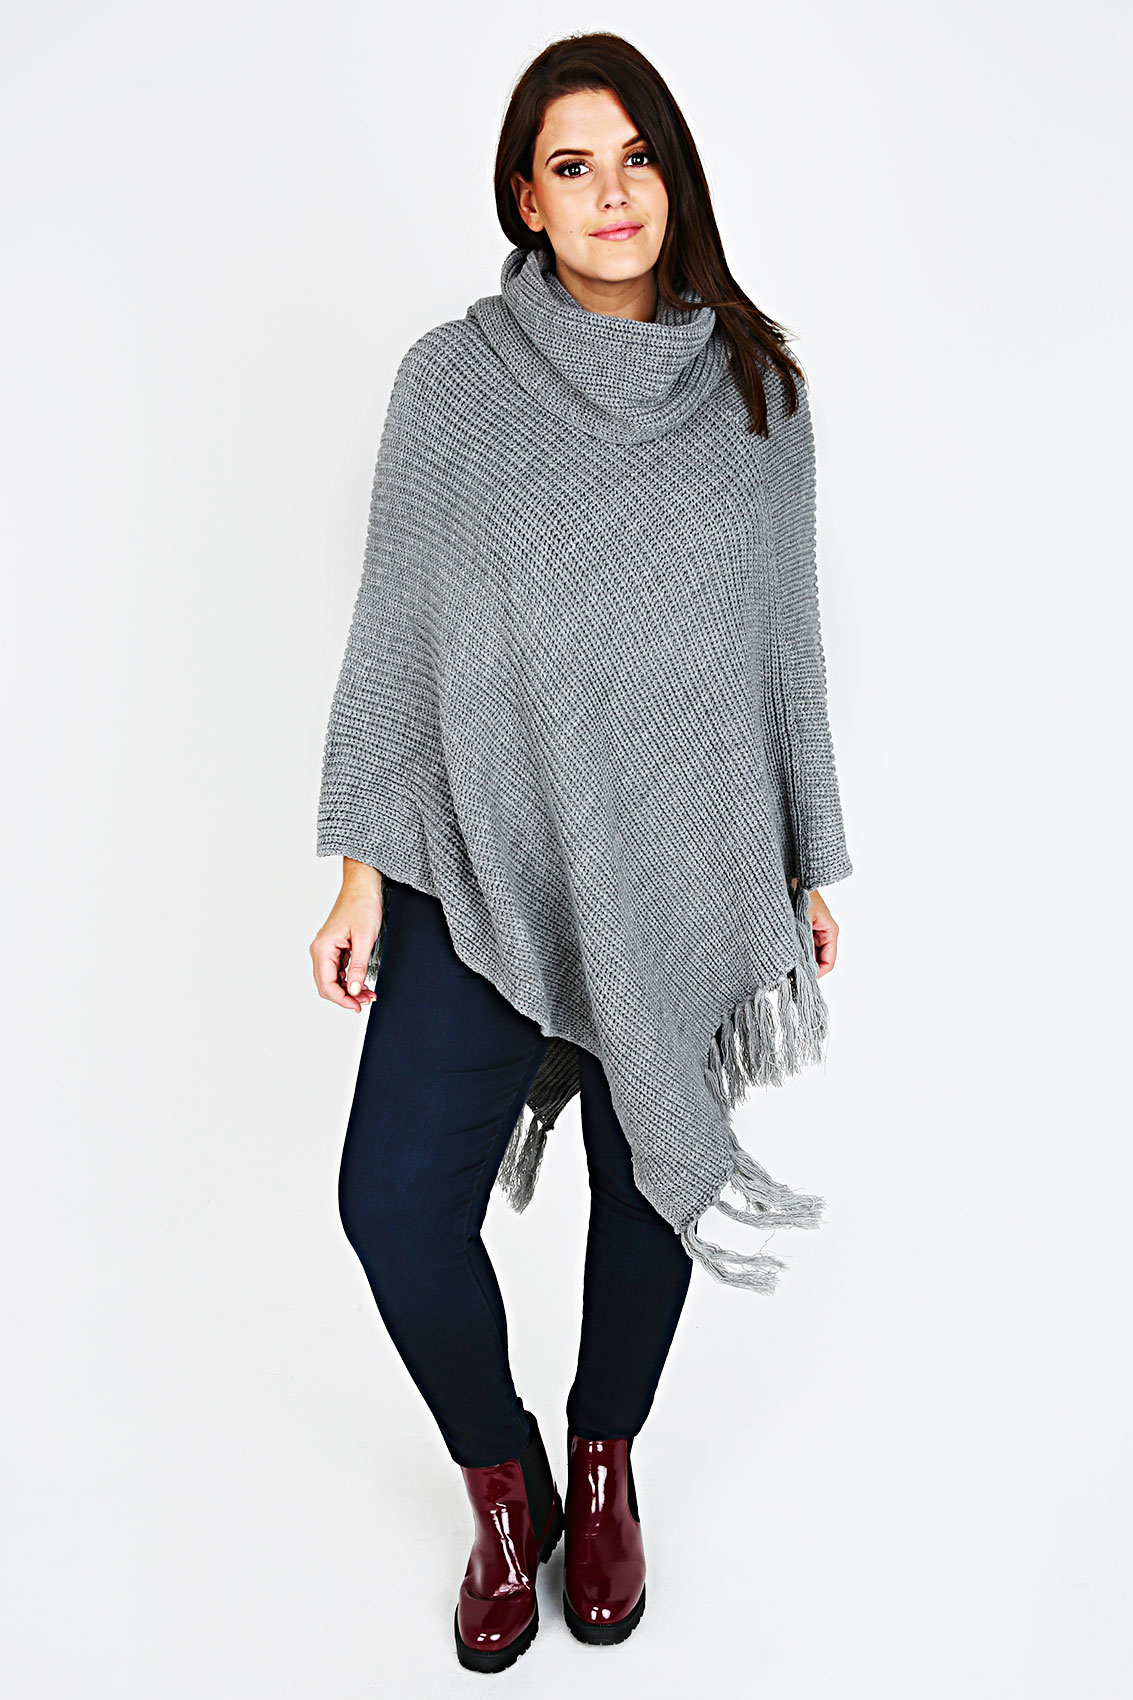 Cowl Neck Poncho Knitting Pattern : Grey Chunky Knit Cowl Neck Poncho With Tassels